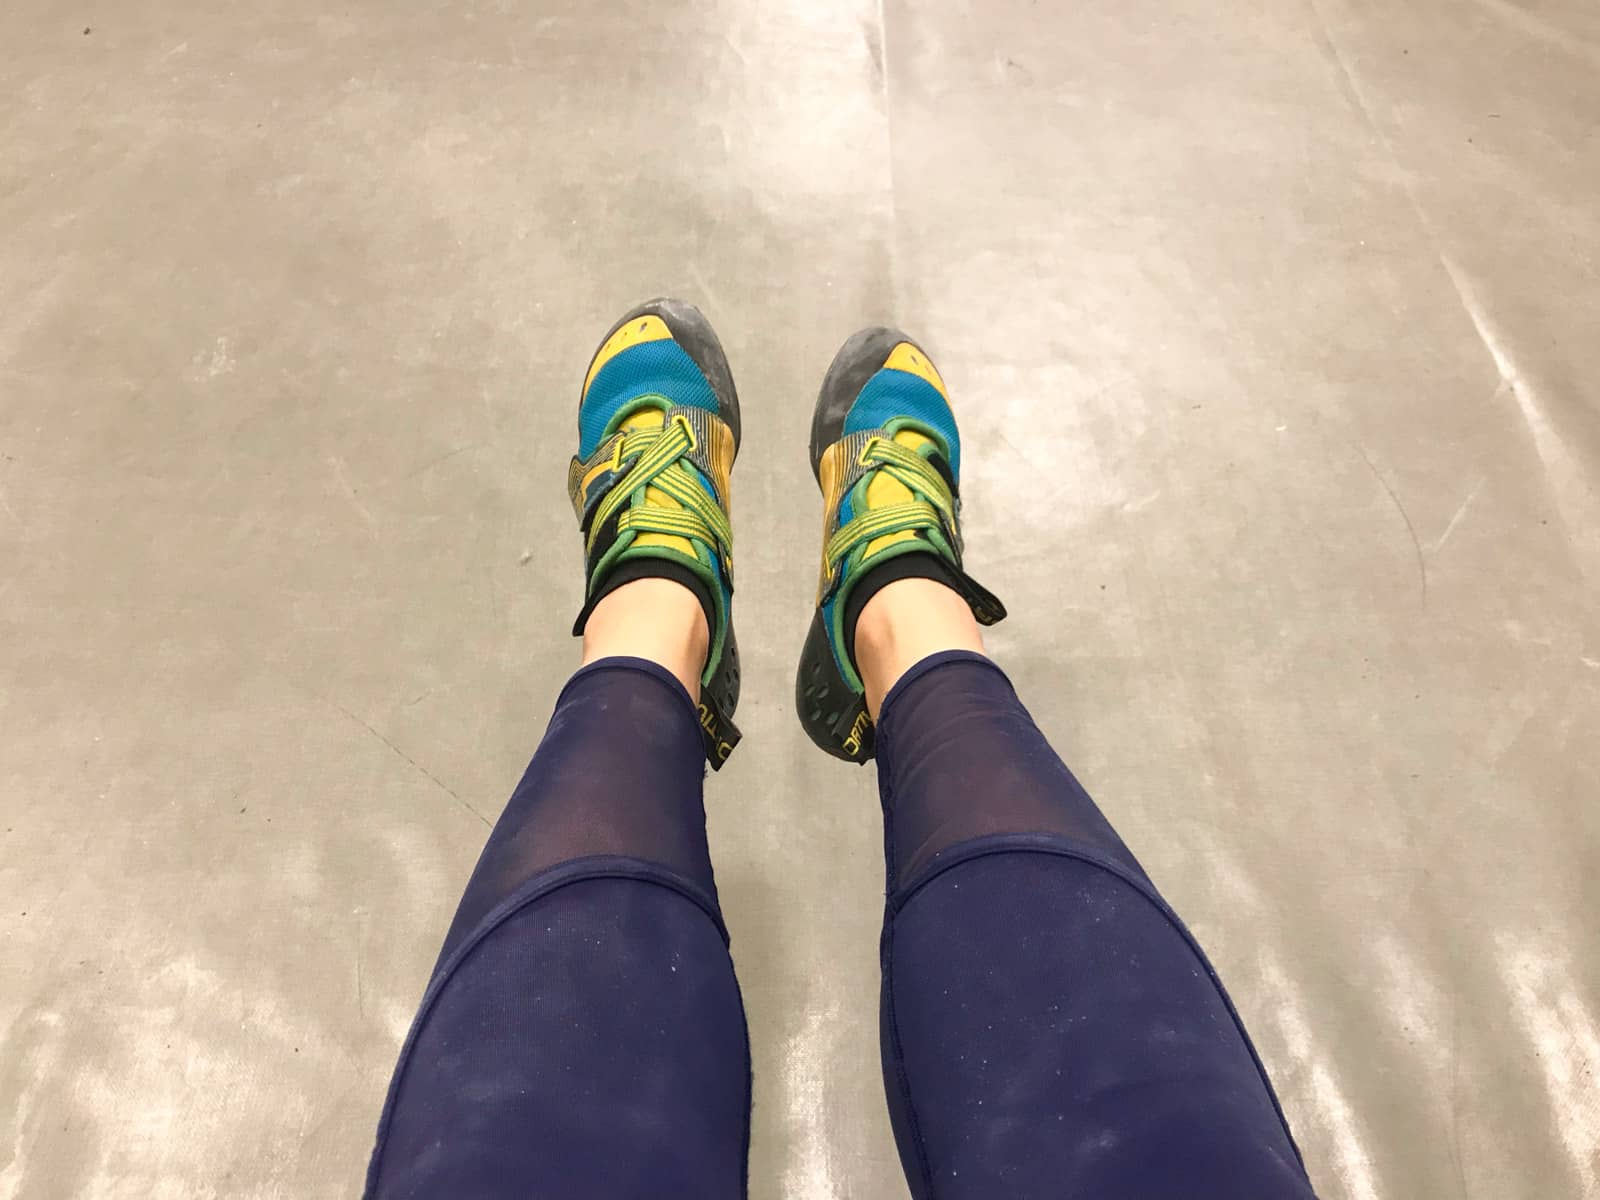 A top-down view of a woman's feet; she is wearing bright yellow and blue rock climbing shoes, and navy blue leggings.